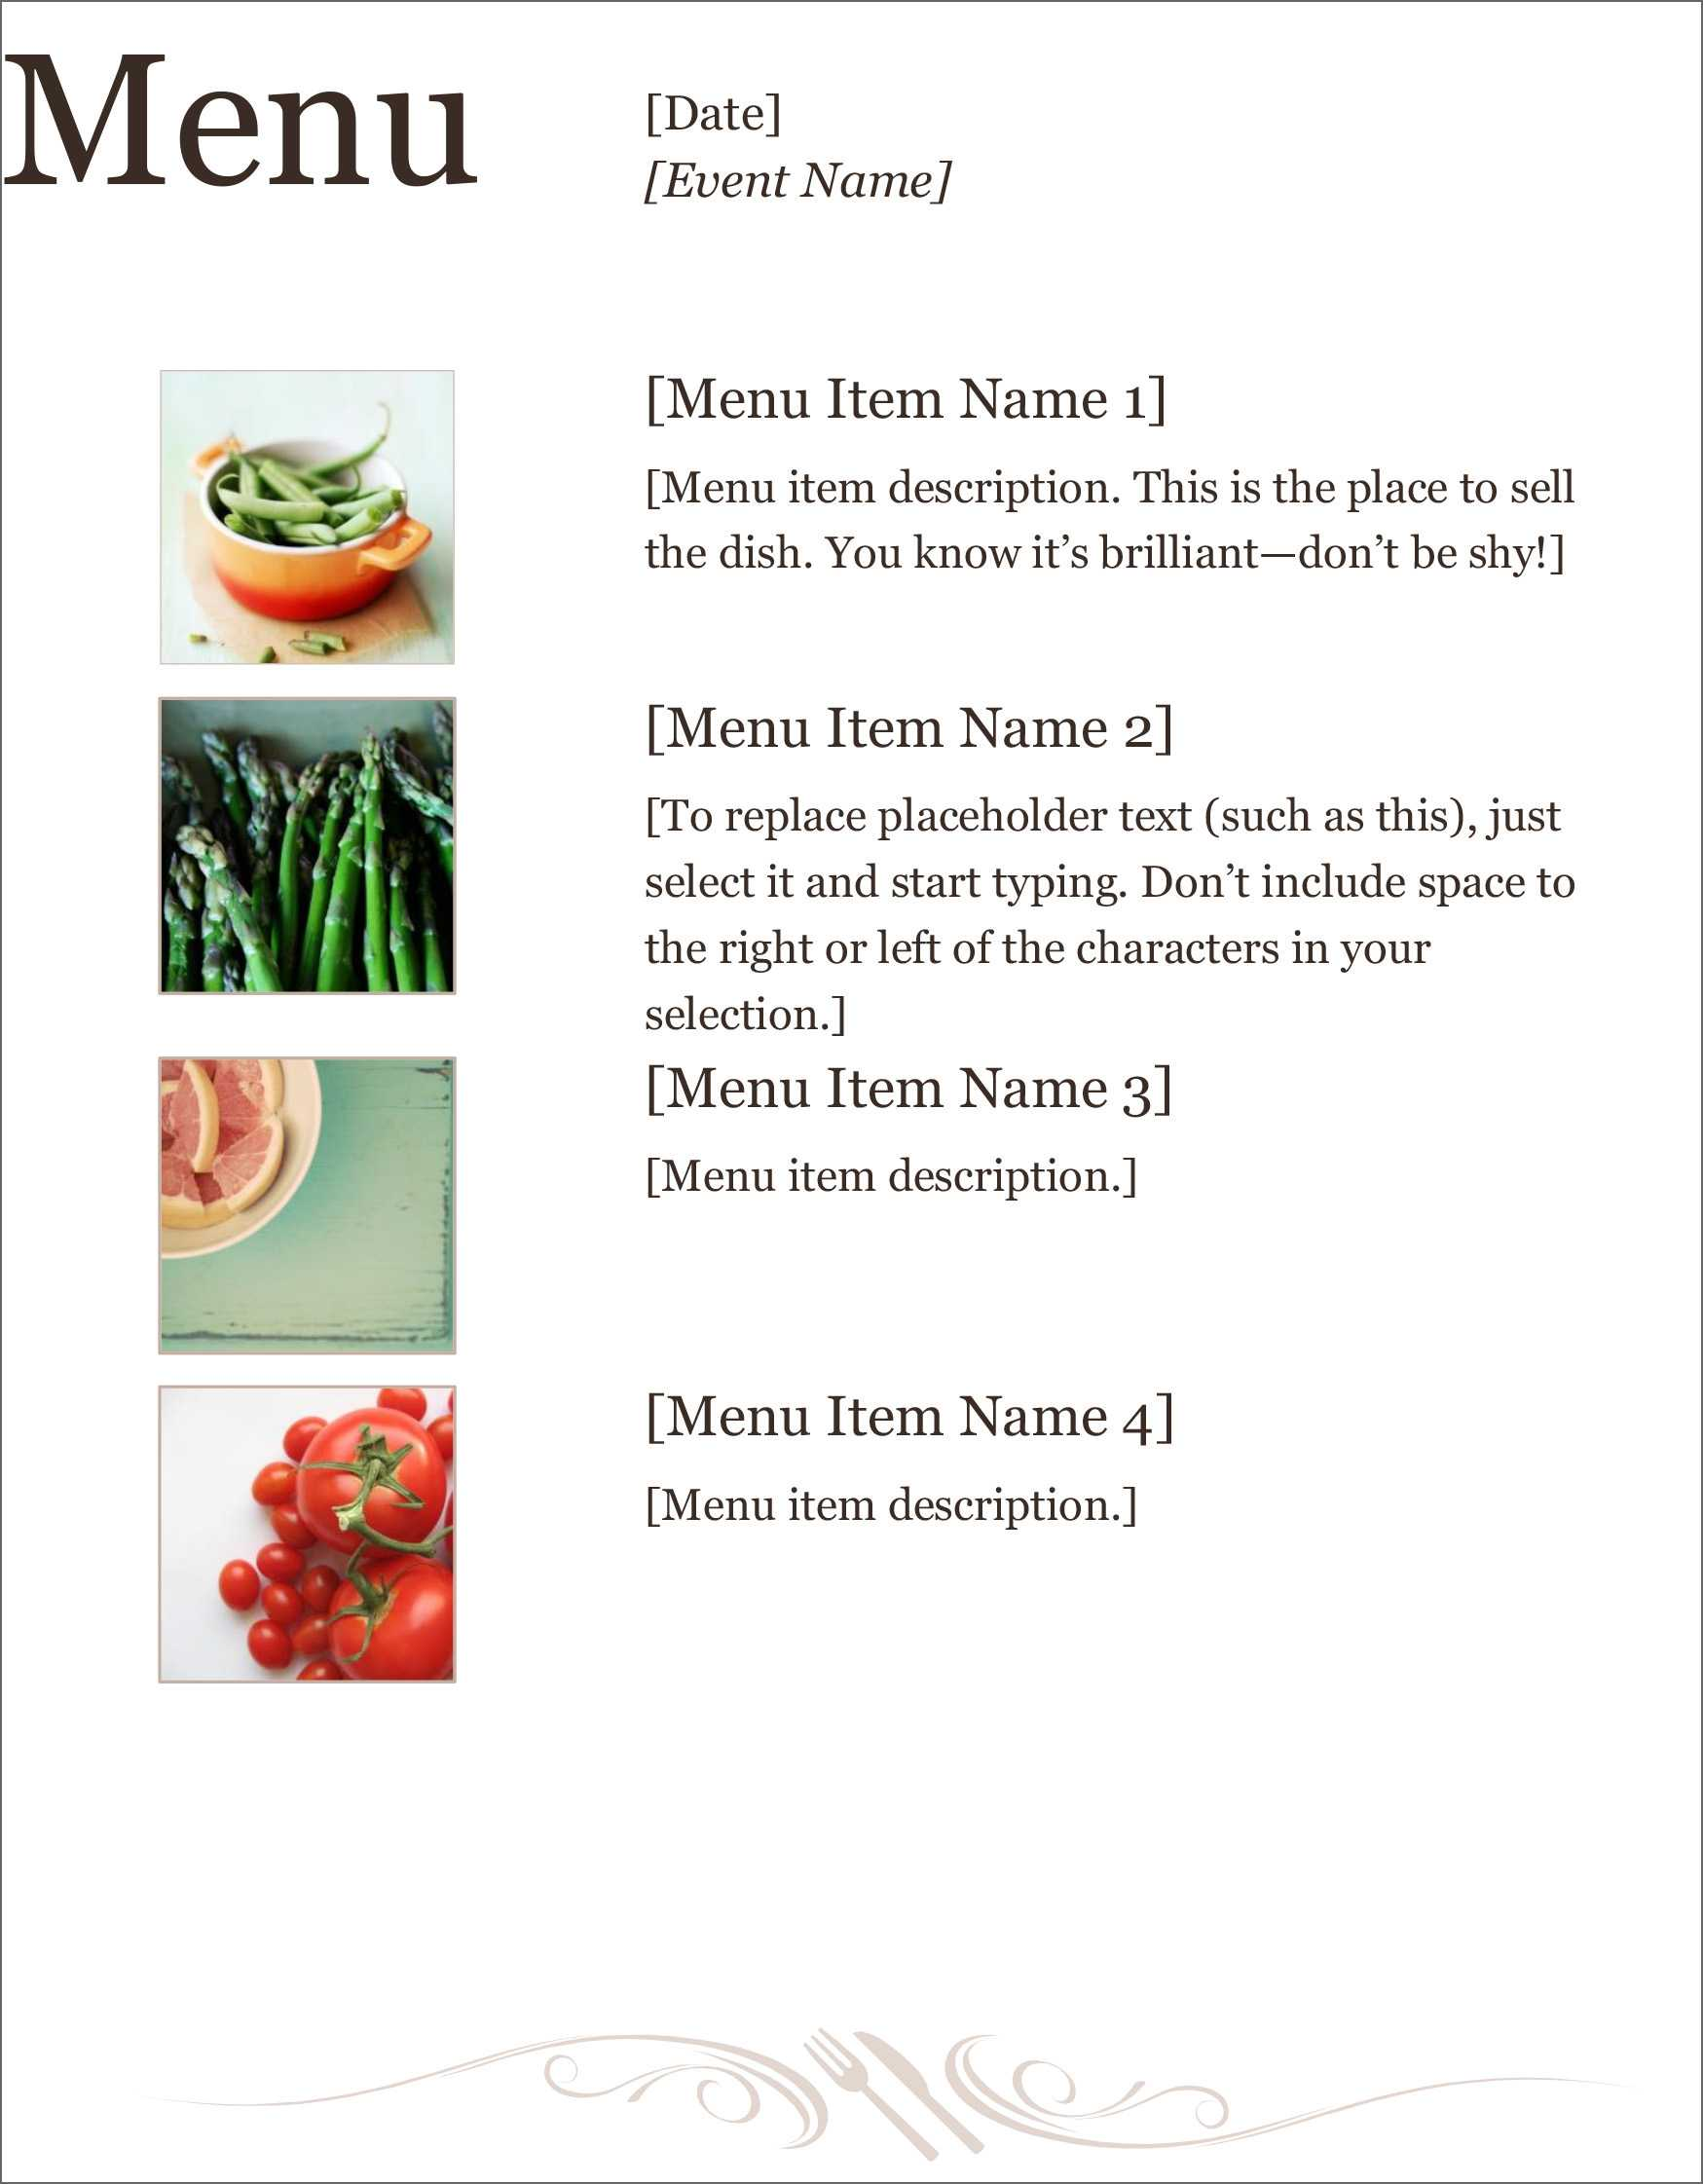 32 Free Simple Menu Templates For Restaurants, Cafes, And Pertaining To Free Restaurant Menu Templates For Microsoft Word